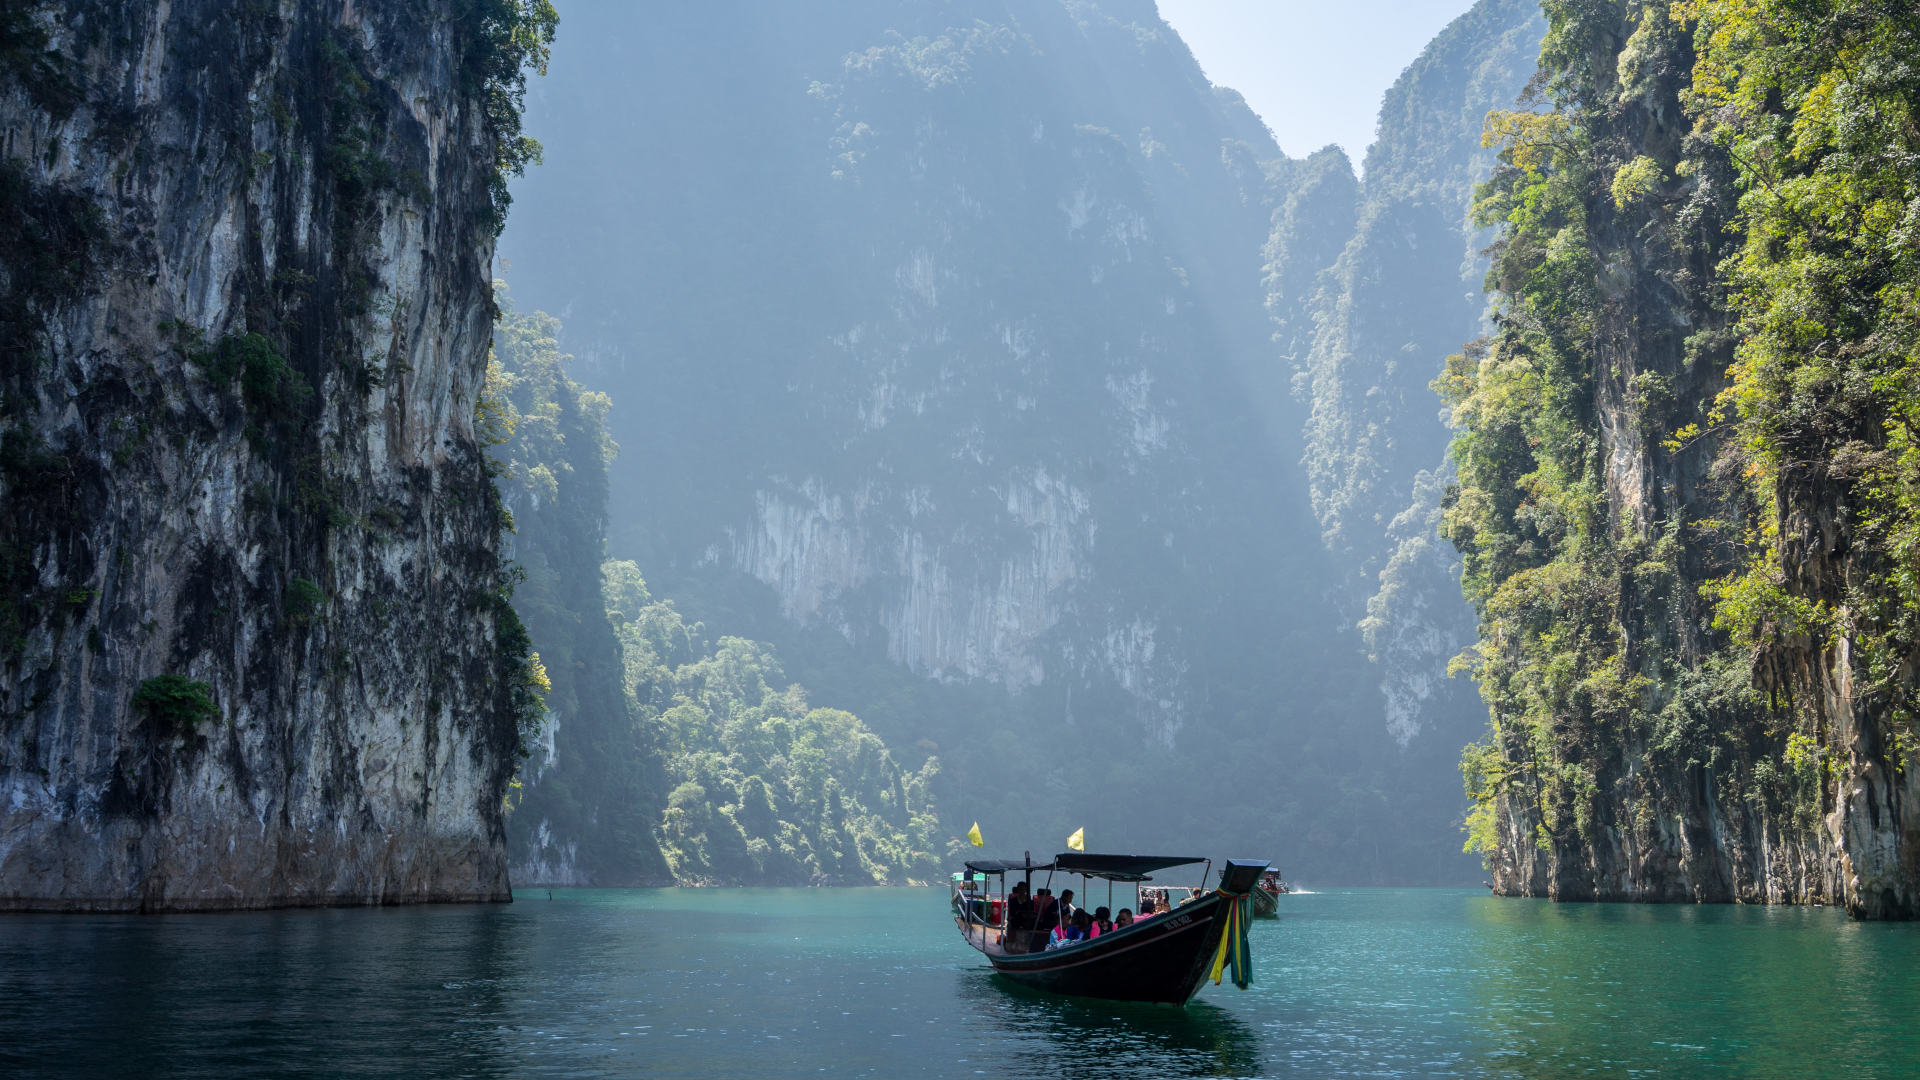 Custom Travel Planner Network-Thailand-Khao Sok National Park-robin-noguier-sydwCr54rf0-unsplash